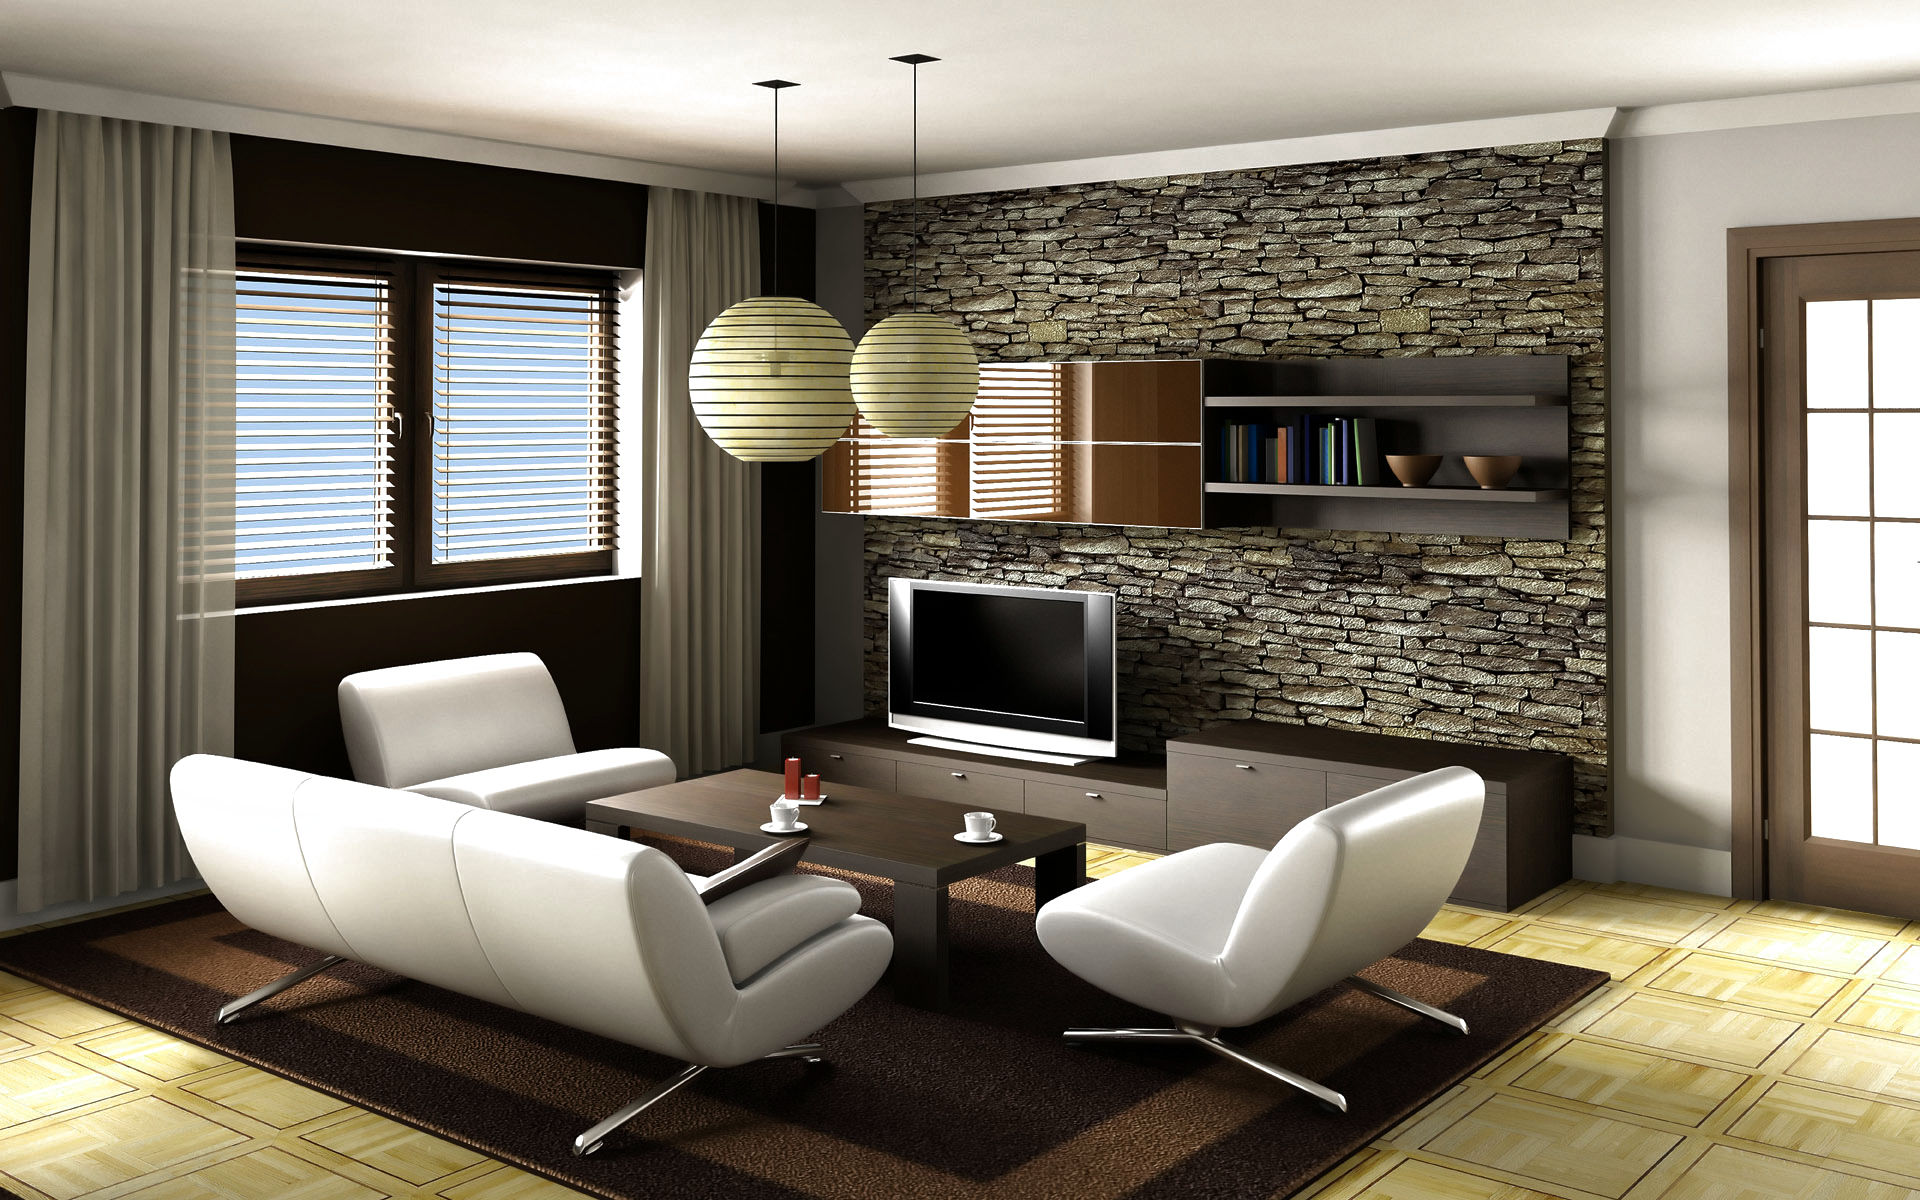 16 modern living room furniture ideas design hgnv com for Modern living room furniture ideas